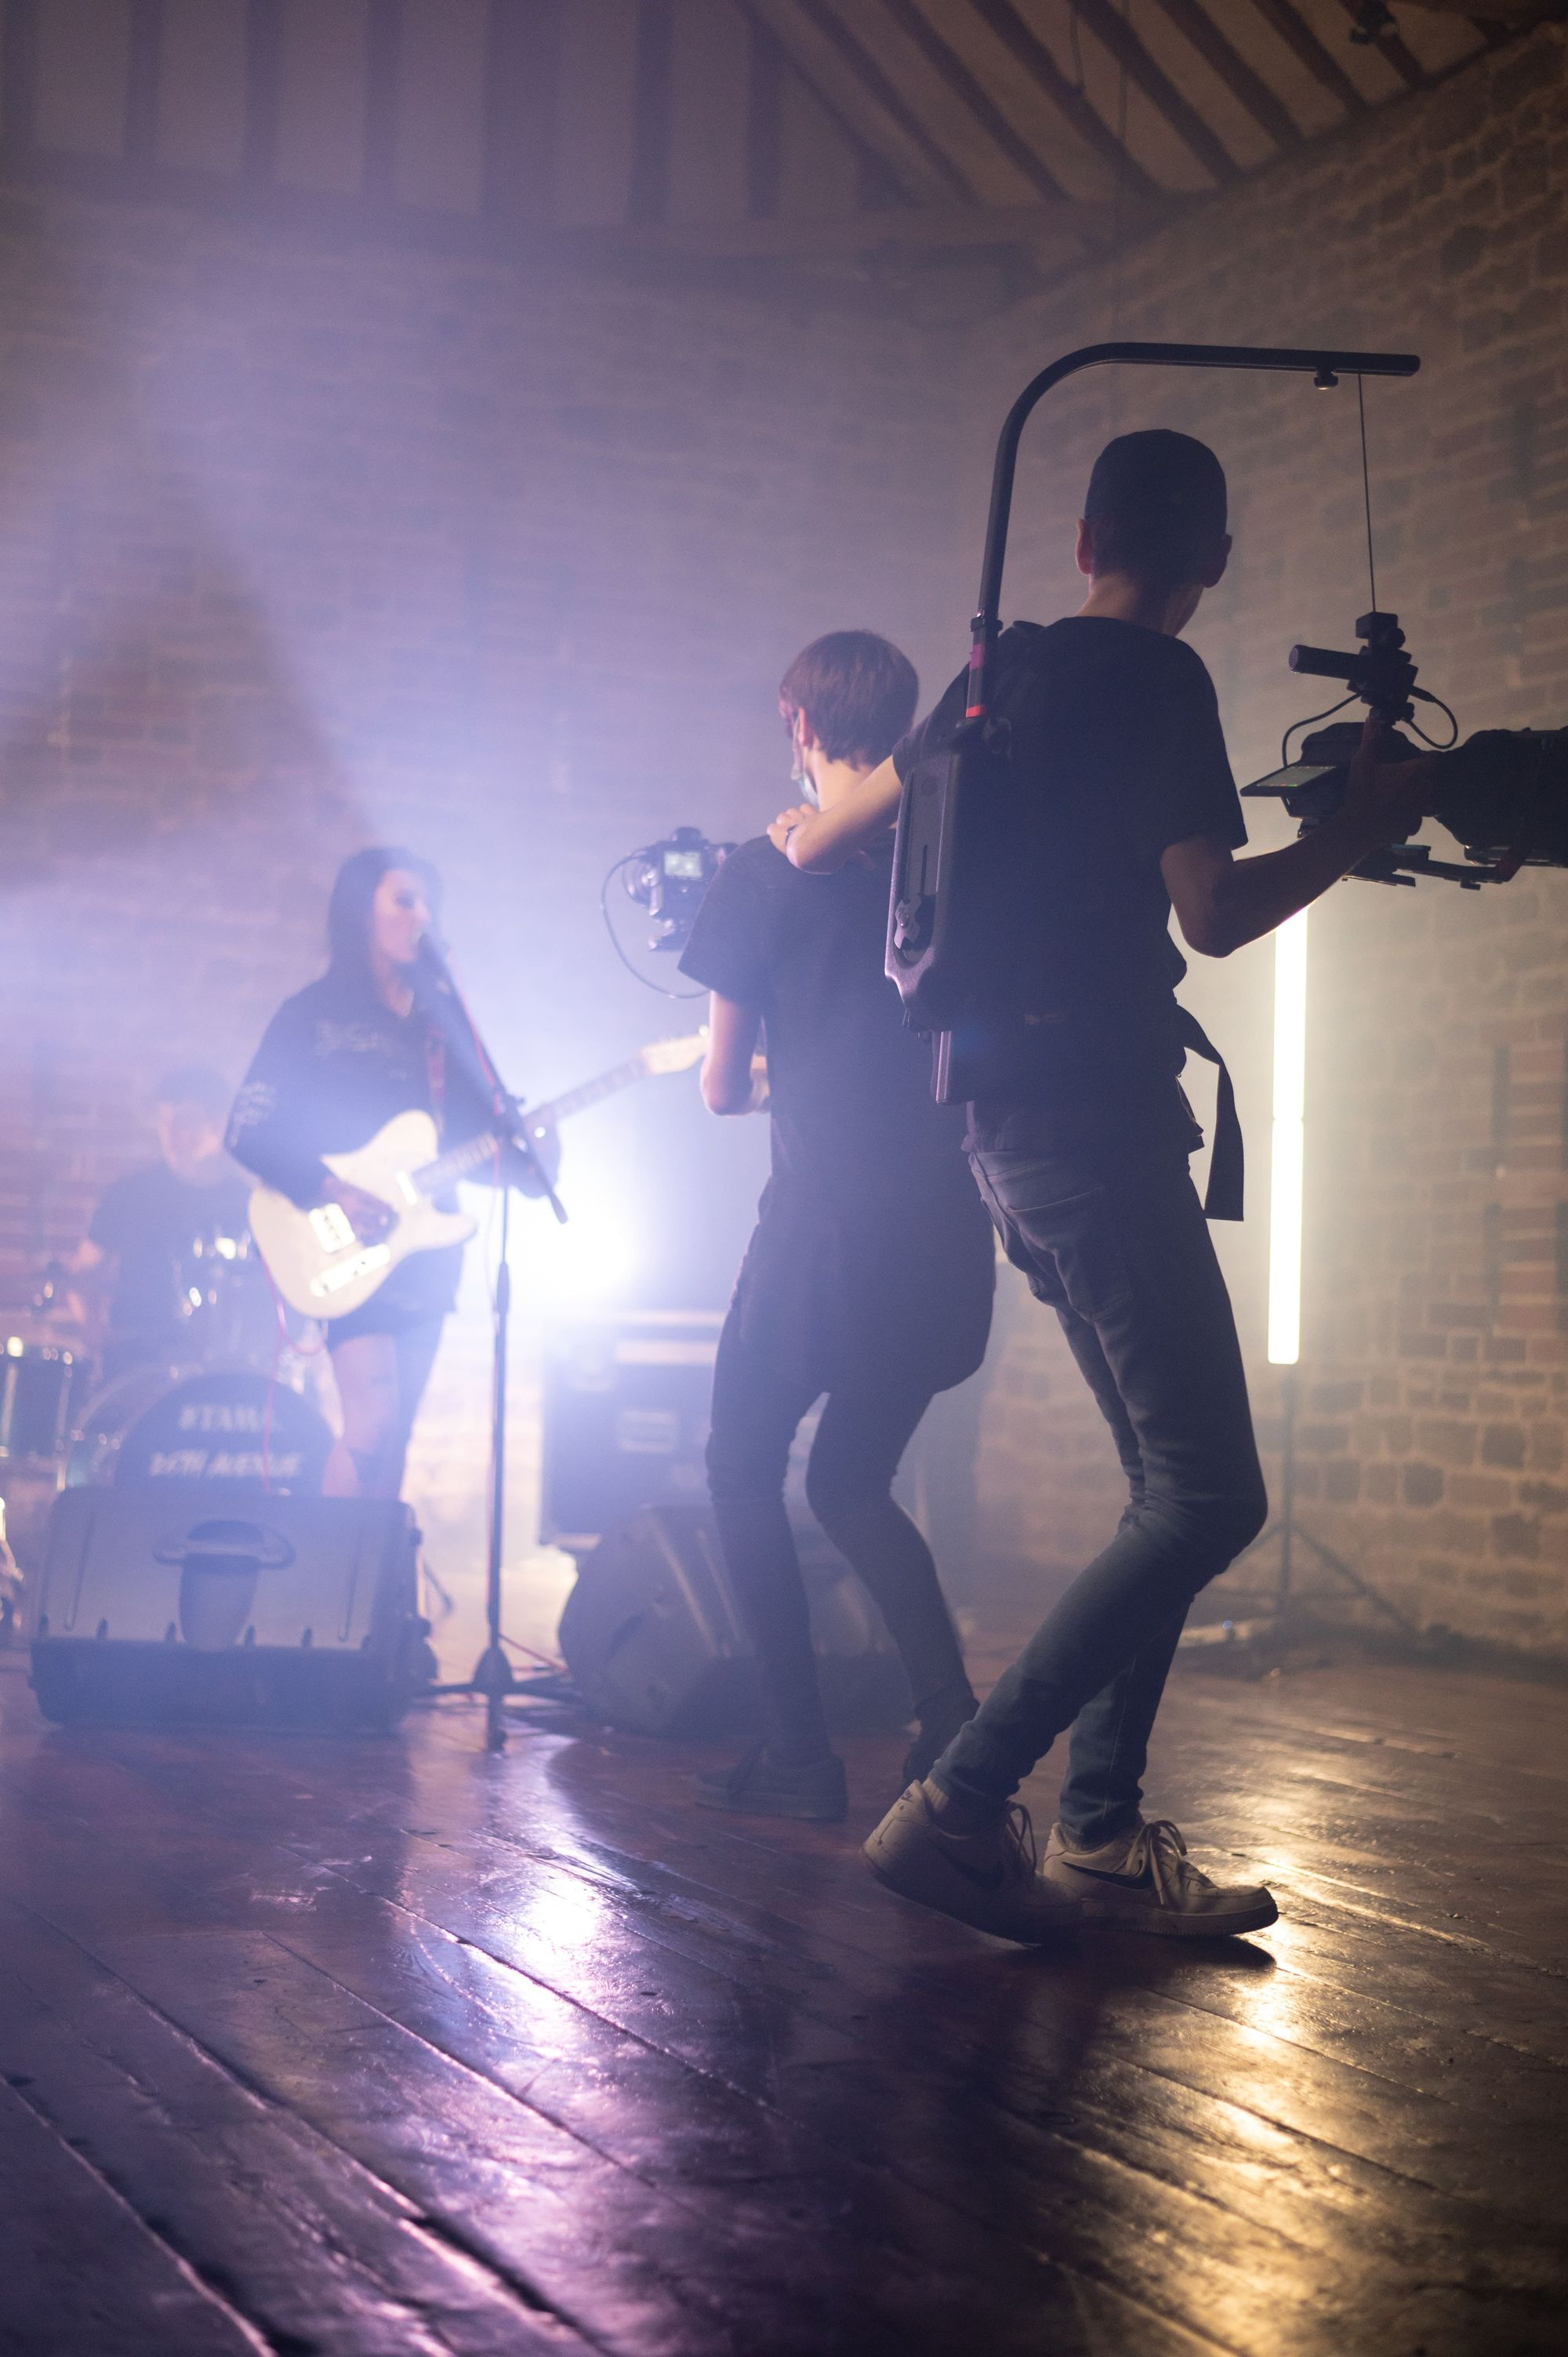 music-video-production-team-filming-band-playing-music